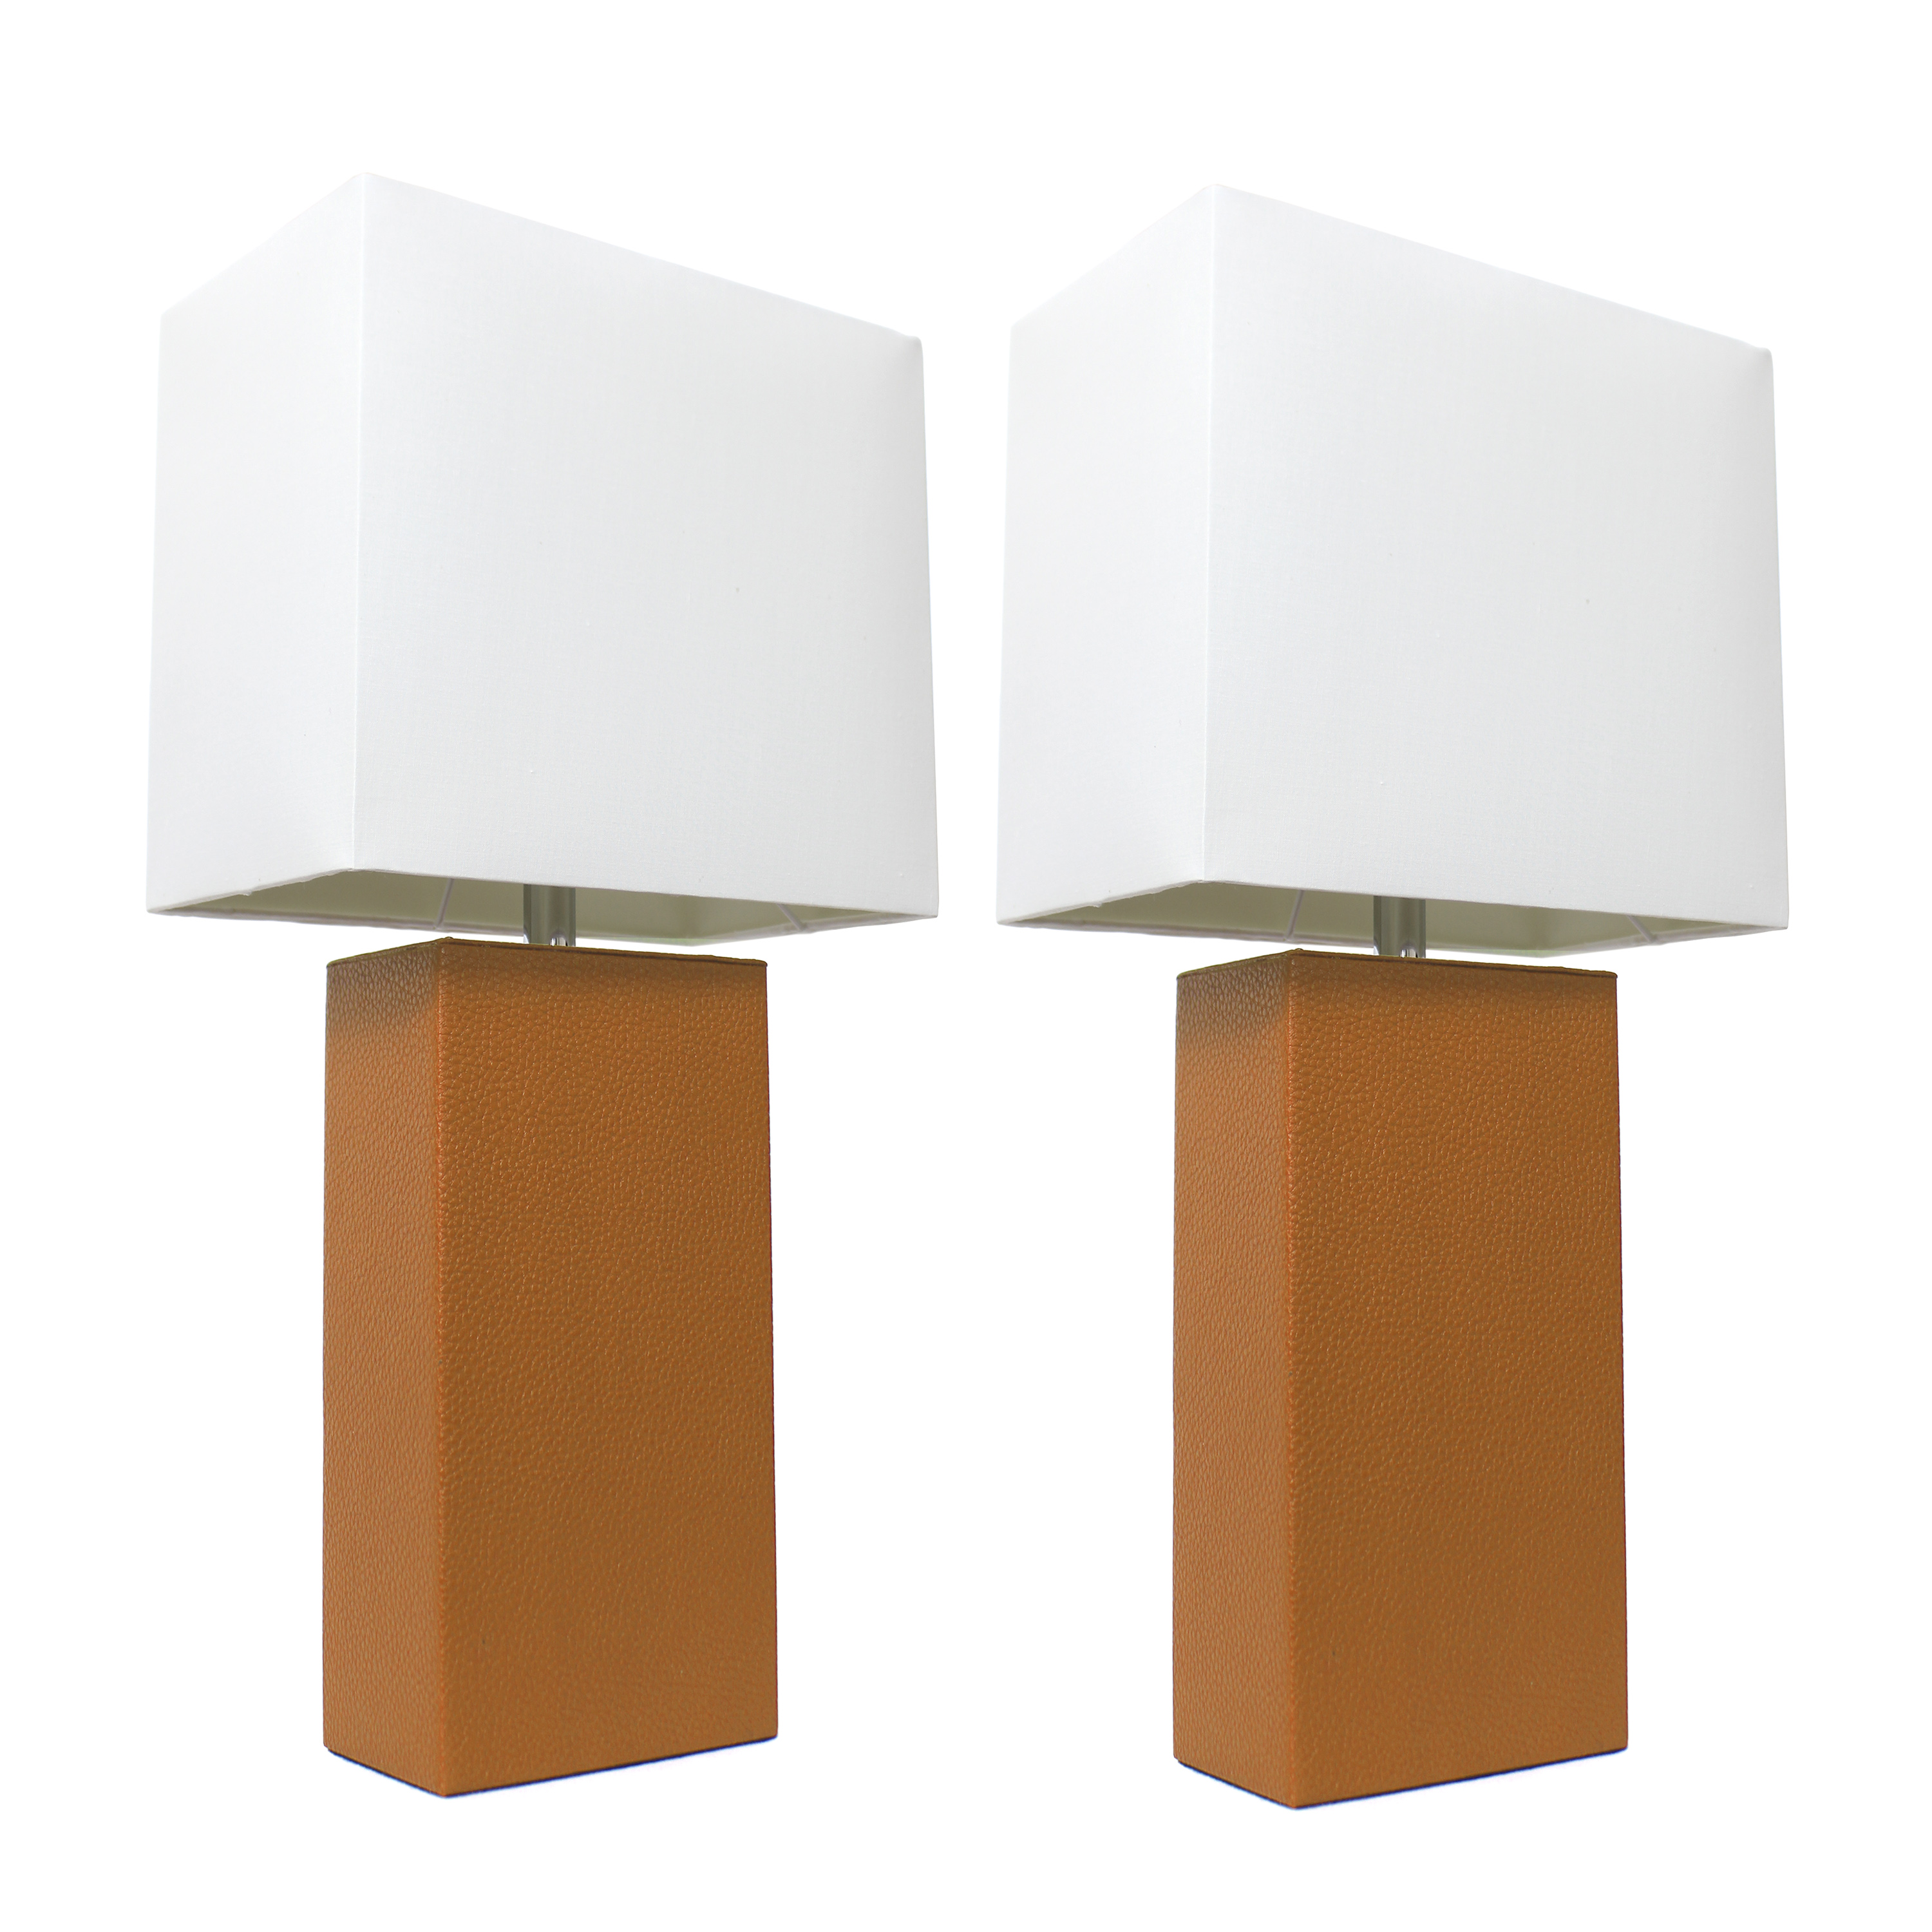 Elegant Designs 2 Pack Modern Leather Table Lamps with White Fabric Shades, Tan